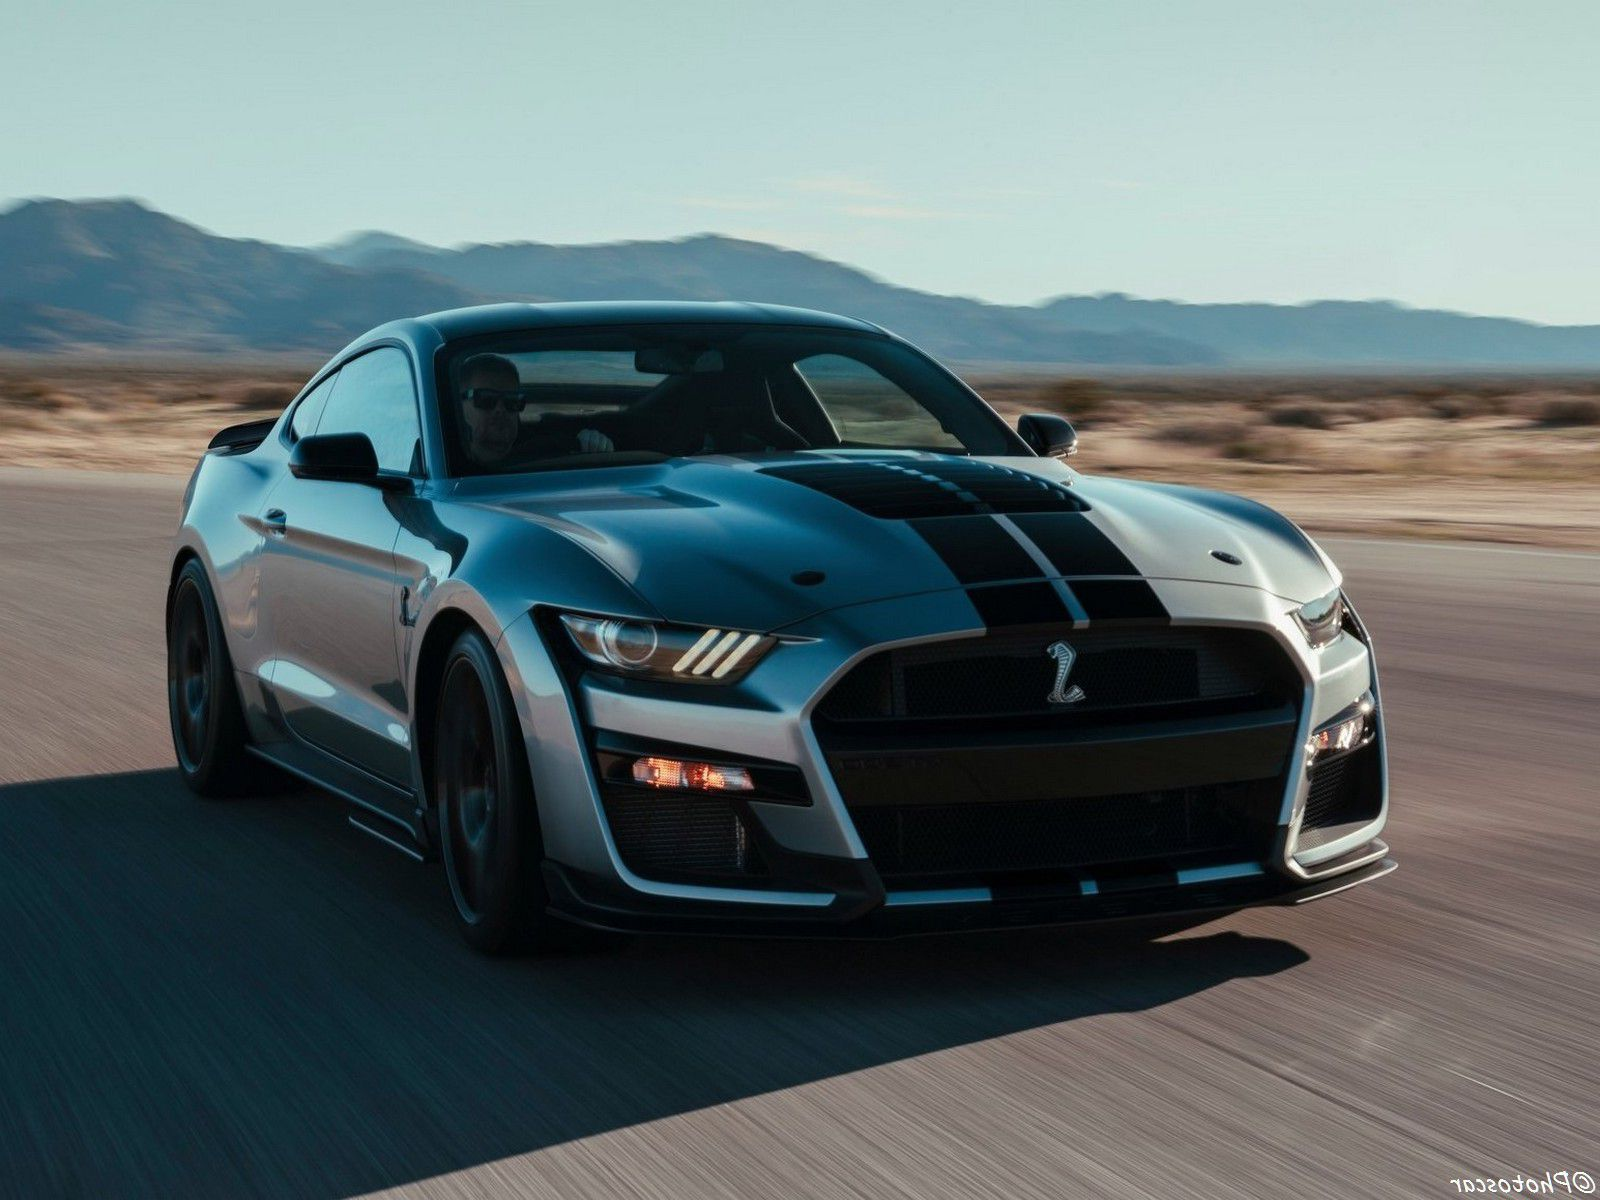 2020 Ford Mustang Shelby GT500 - Cobra in motion